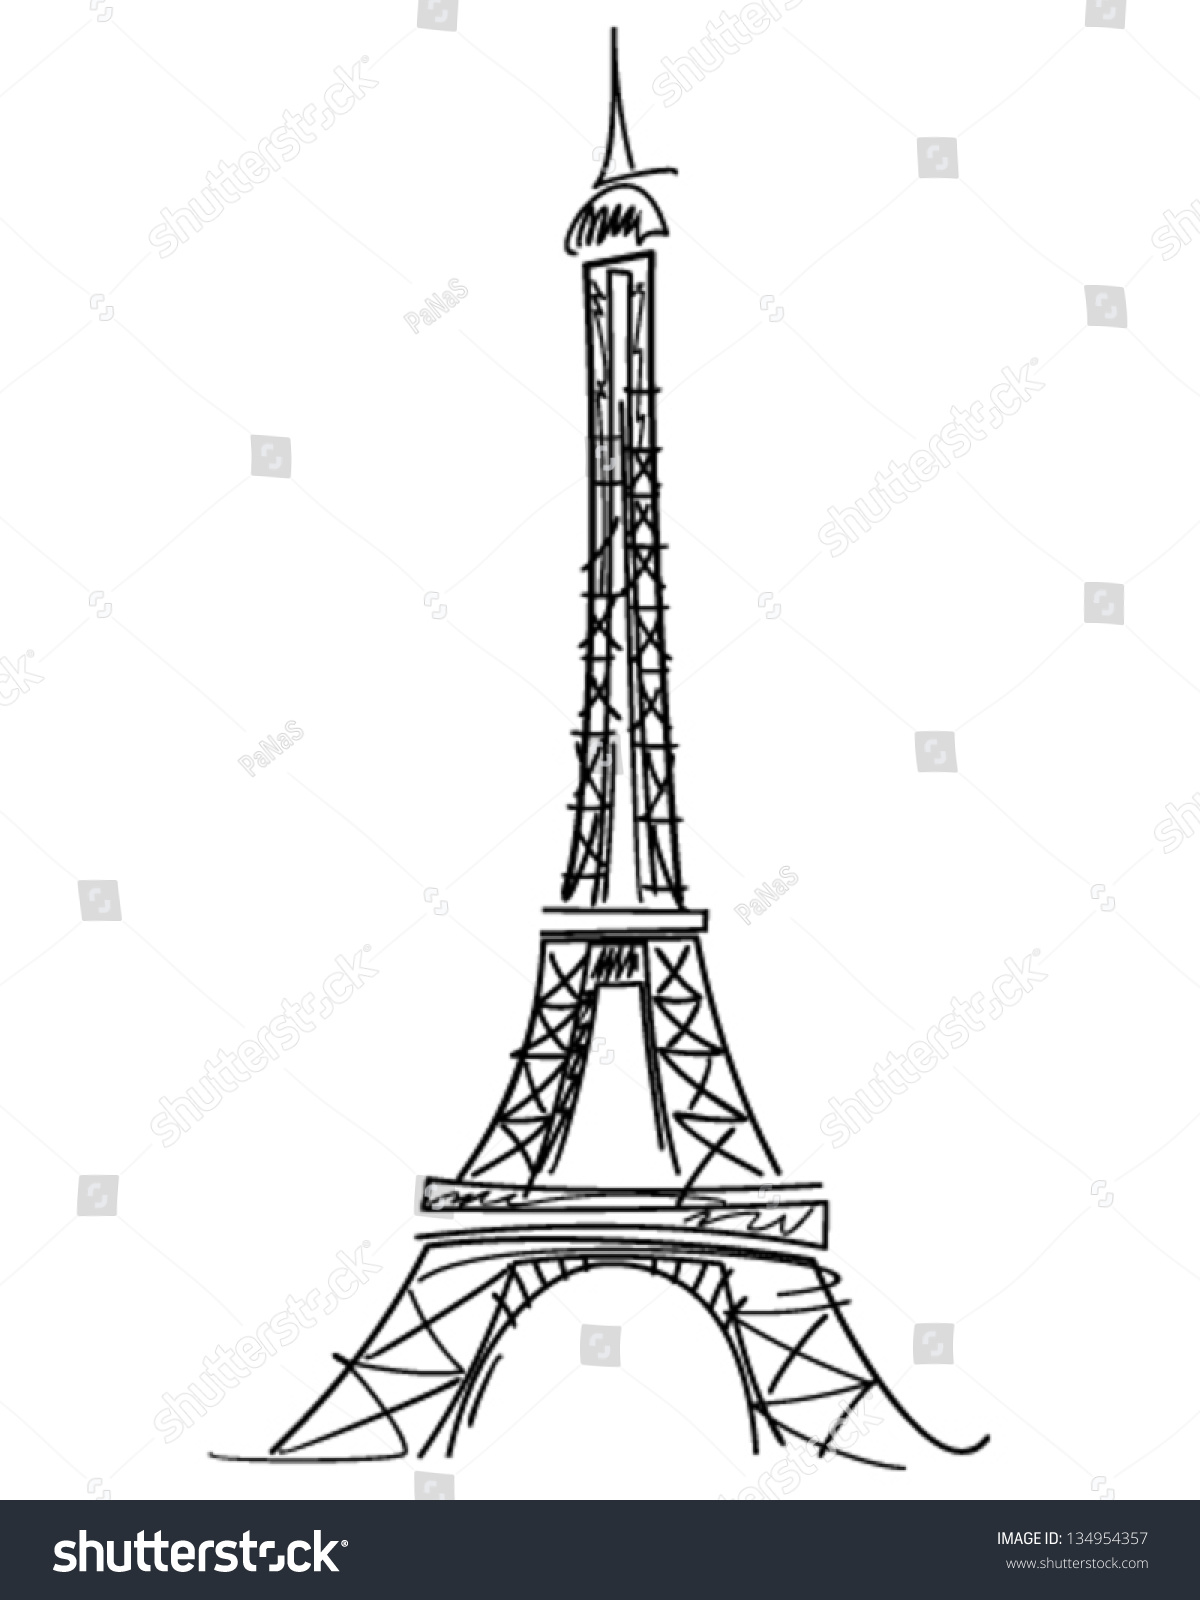 related to eiffel tower - photo #30